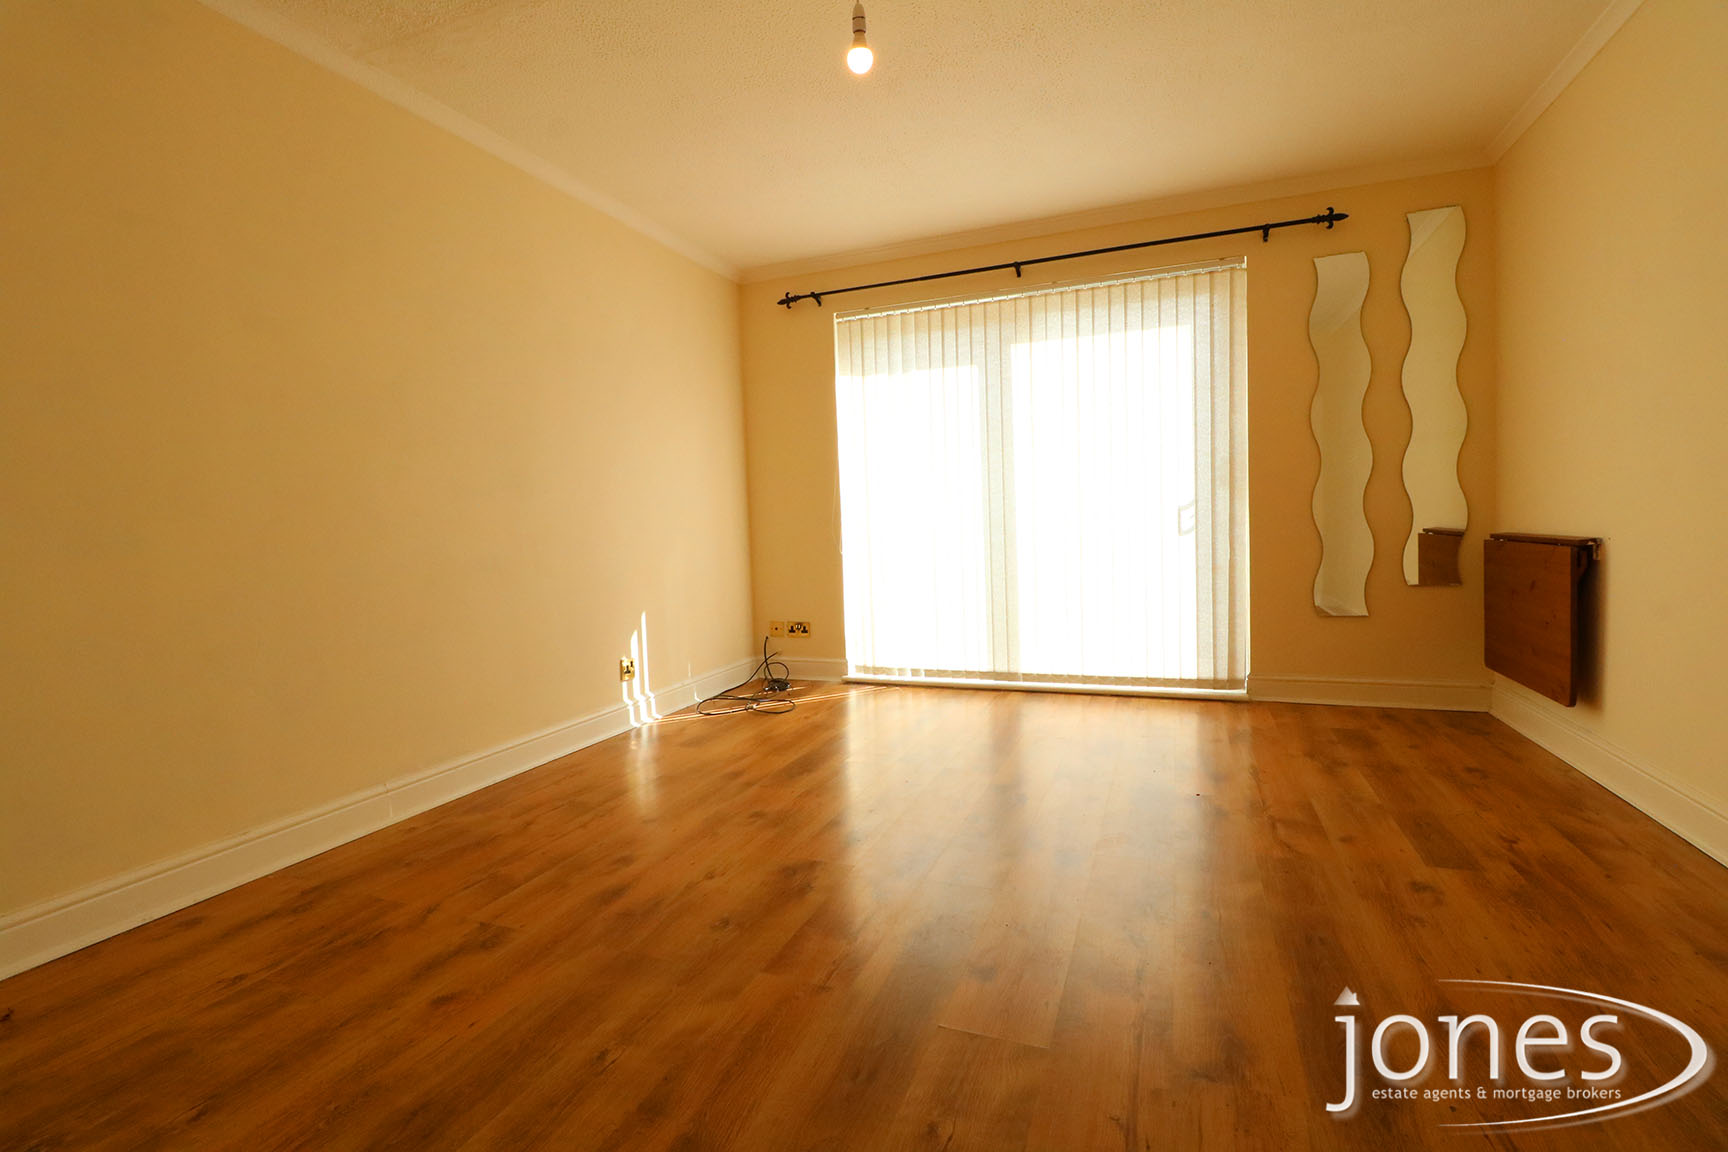 Home for Sale Let - Photo 02 Stanley Close,Thornaby, Stockton on Tees, TS17 6PP